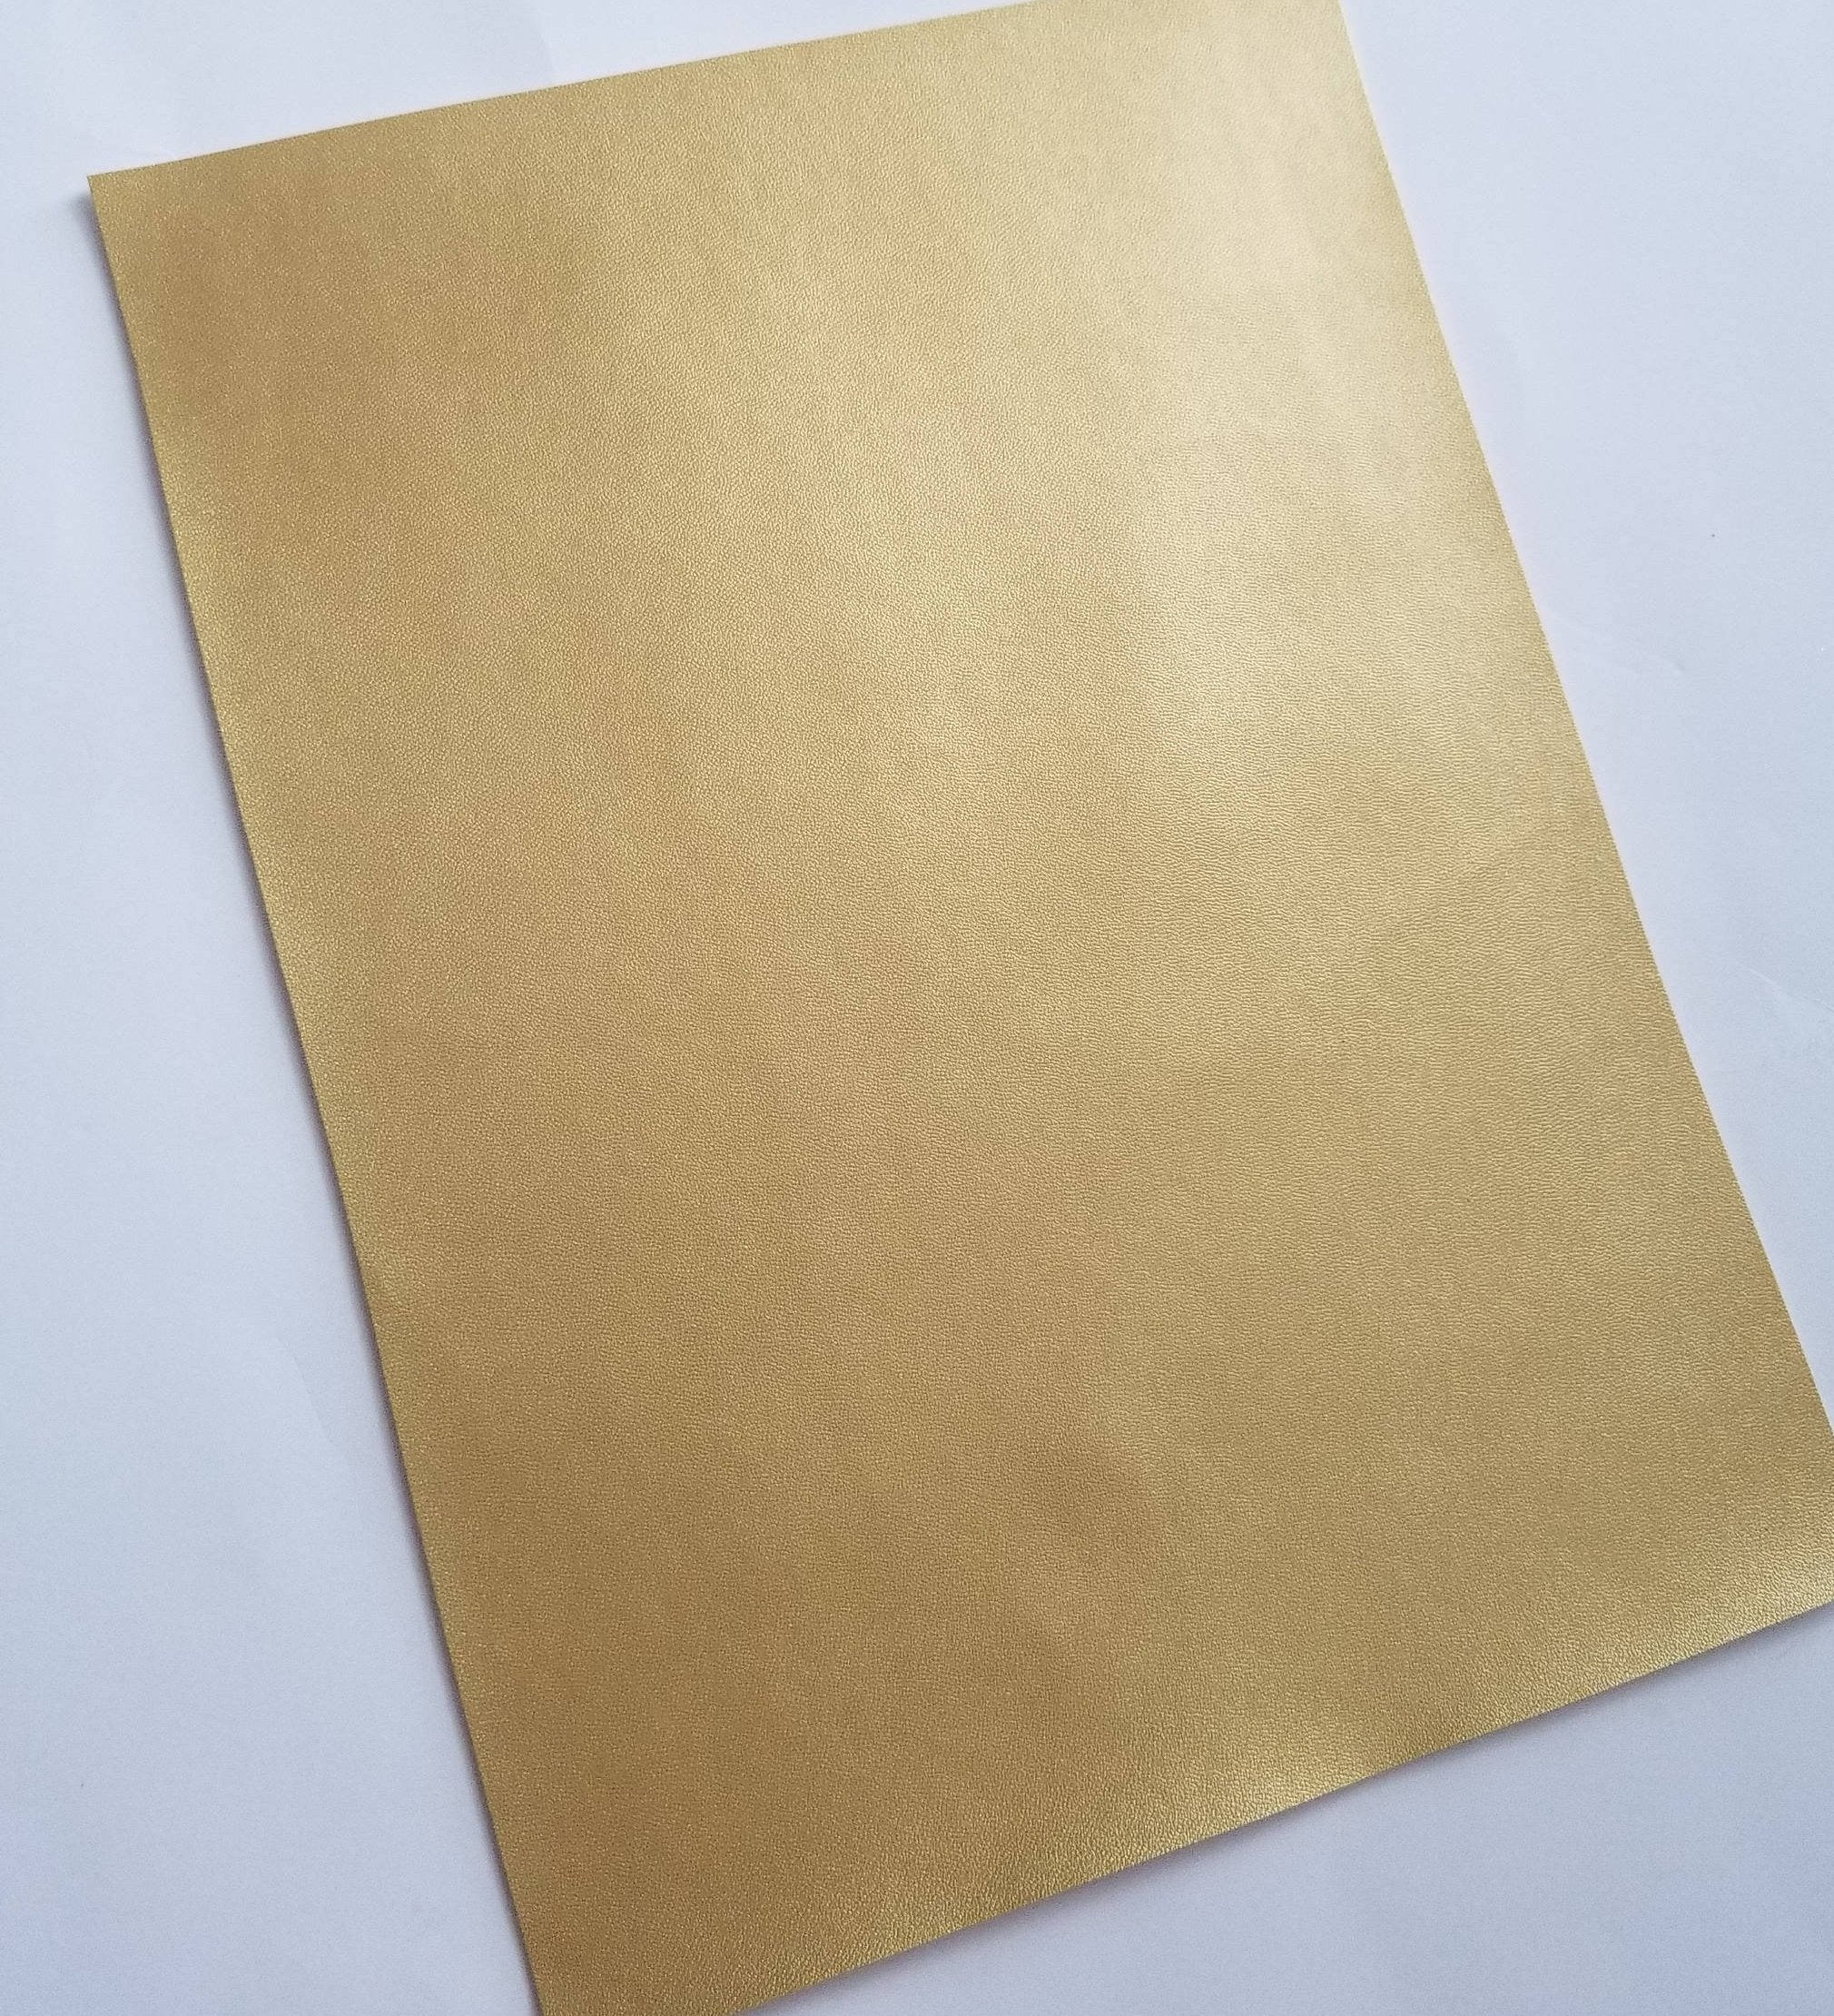 GLOSSY CHAMPAGNE GOLD smooth faux leather sheet faux leather gold vegan leather 8x11 faux leather fake leather patent leather fabric